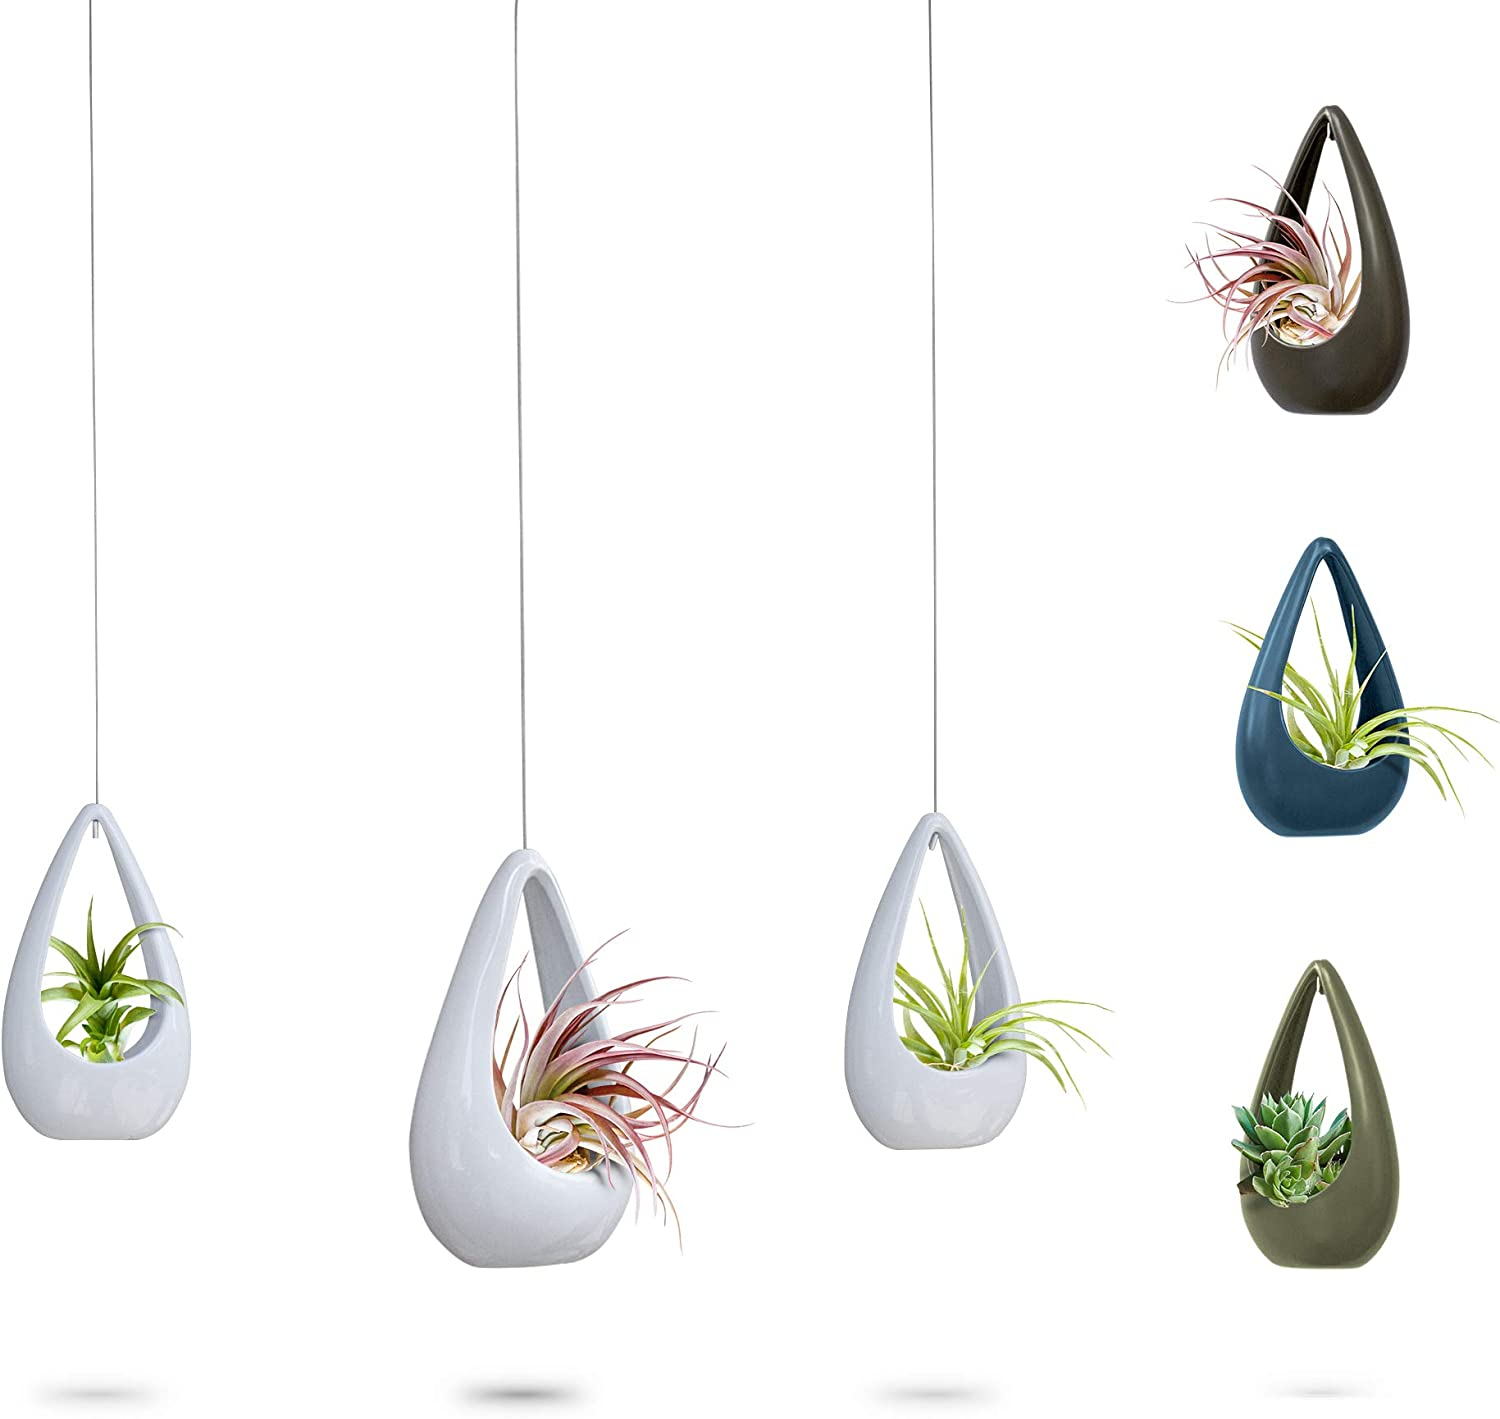 23 Bees Hanging Air Plant Holder White Hanger Ceramic Planter Small Floating Succulent Pots Container Cactus Holders with Metal Wire 3 Pack